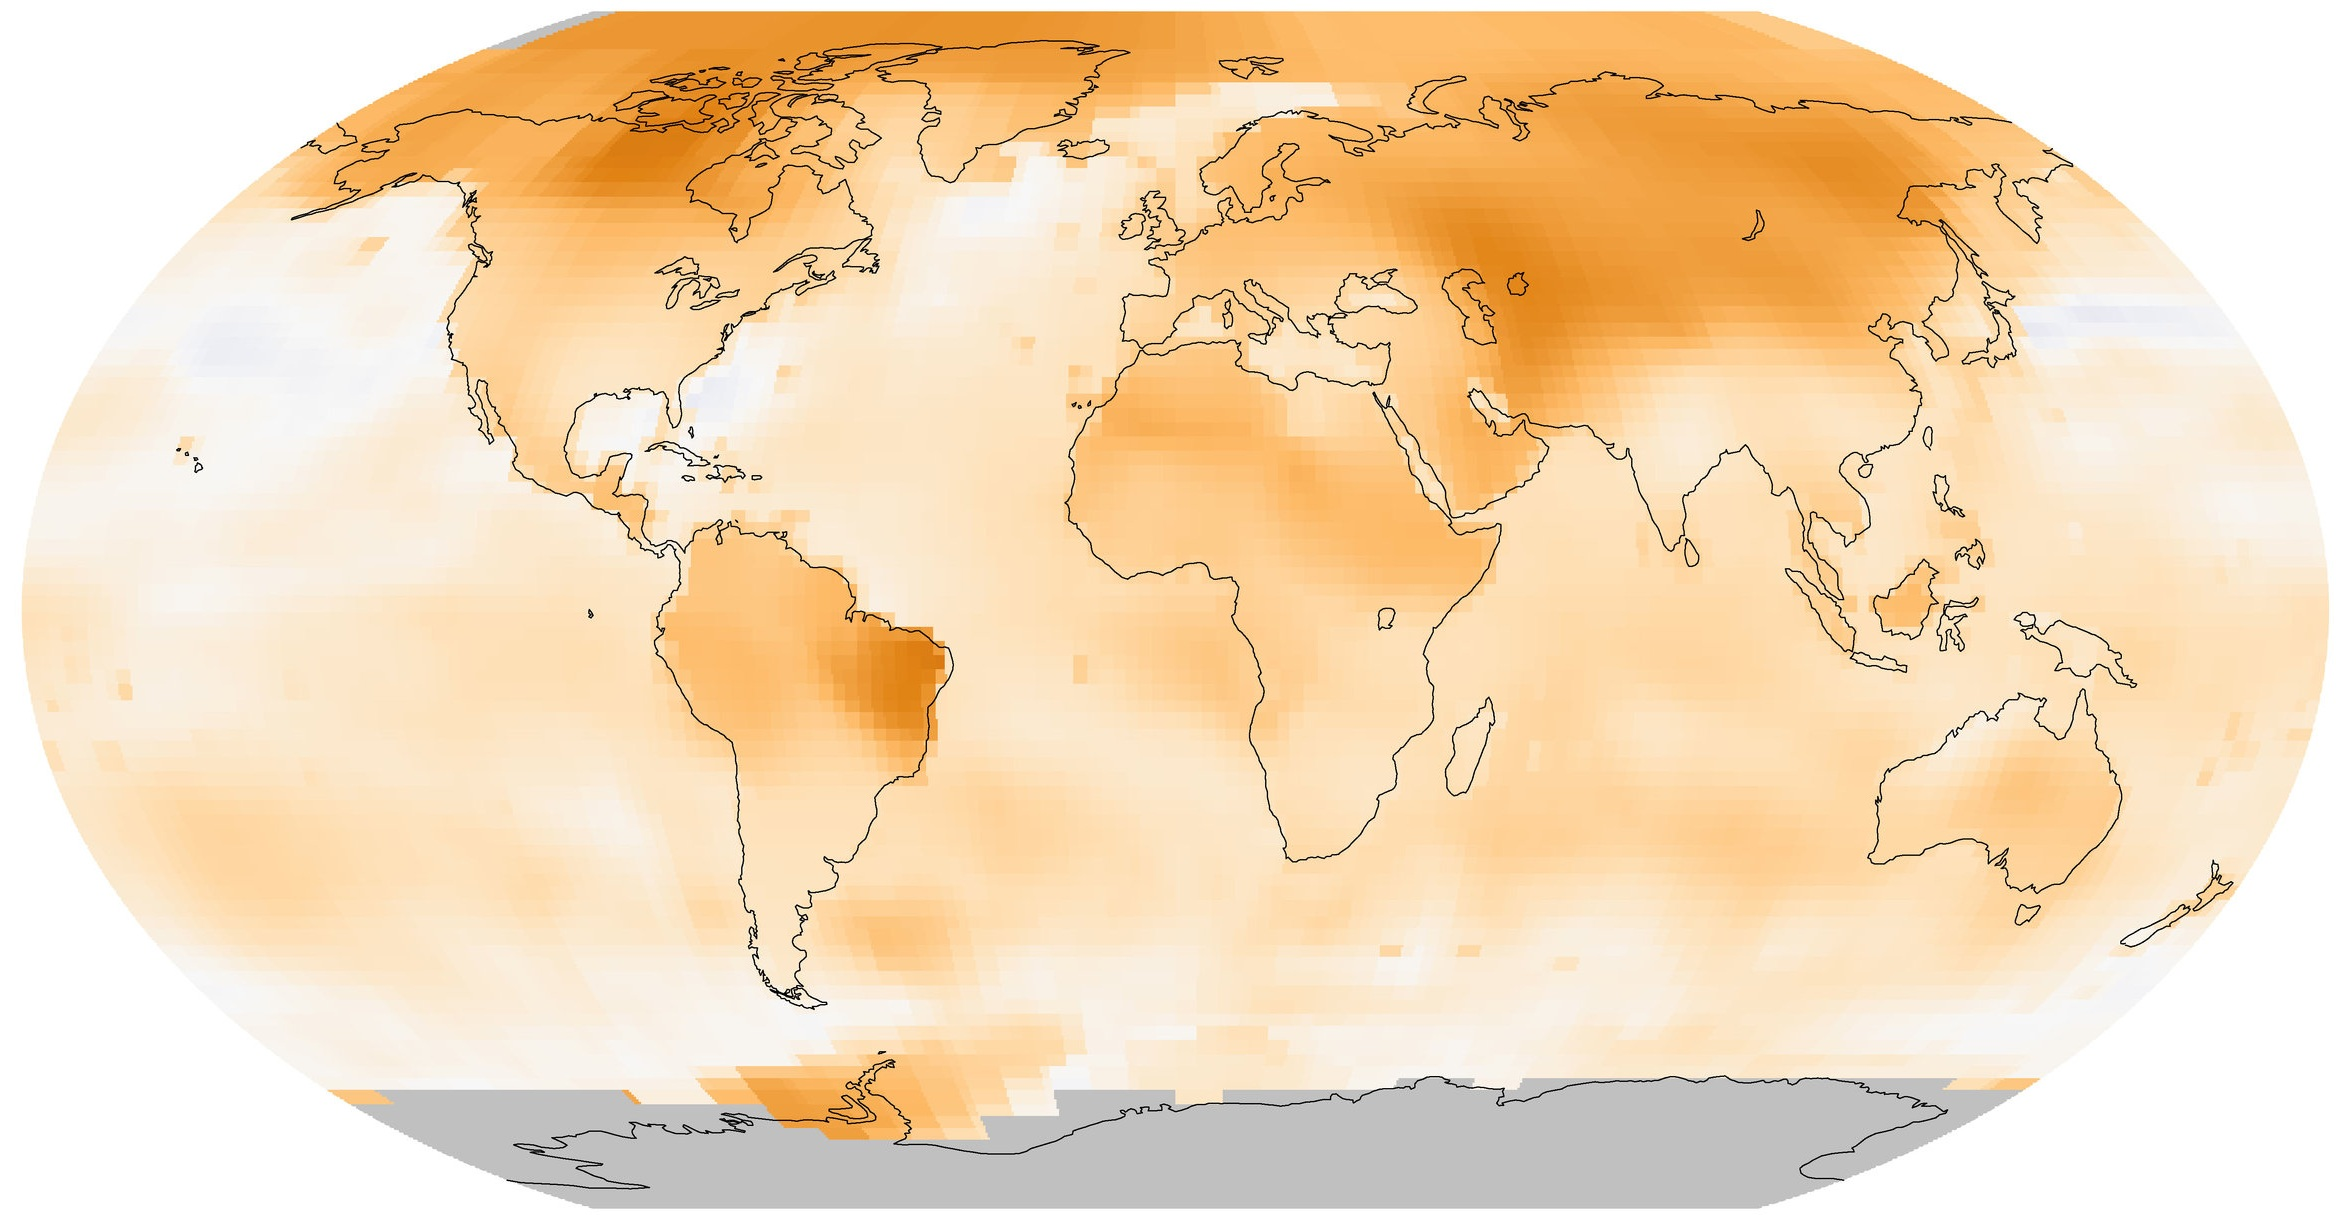 Ep 15: Climate change: should they stay or should they go?